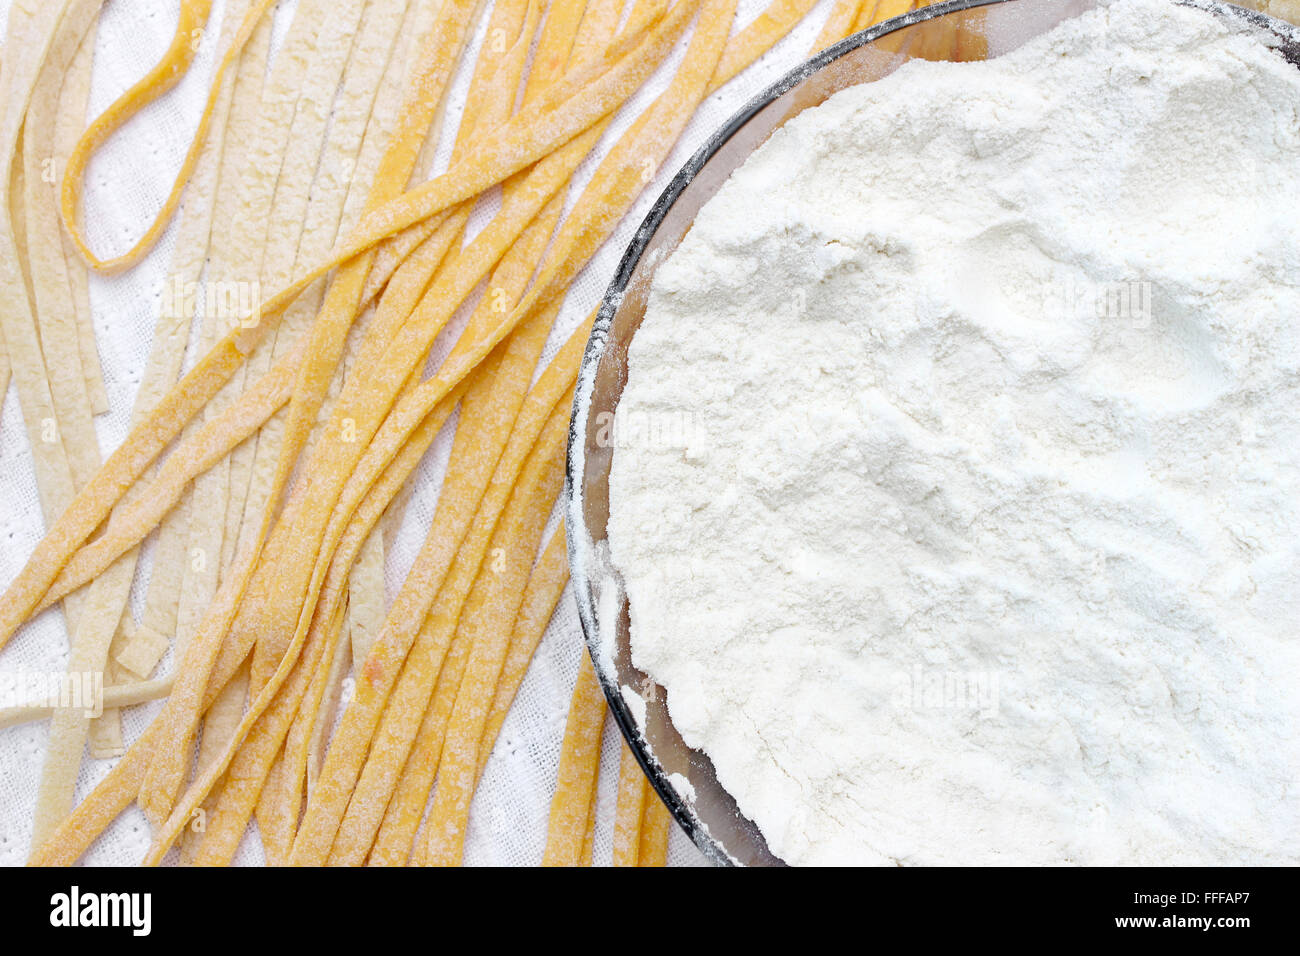 Fresh spaggeti with flour just been produced. - Stock Image